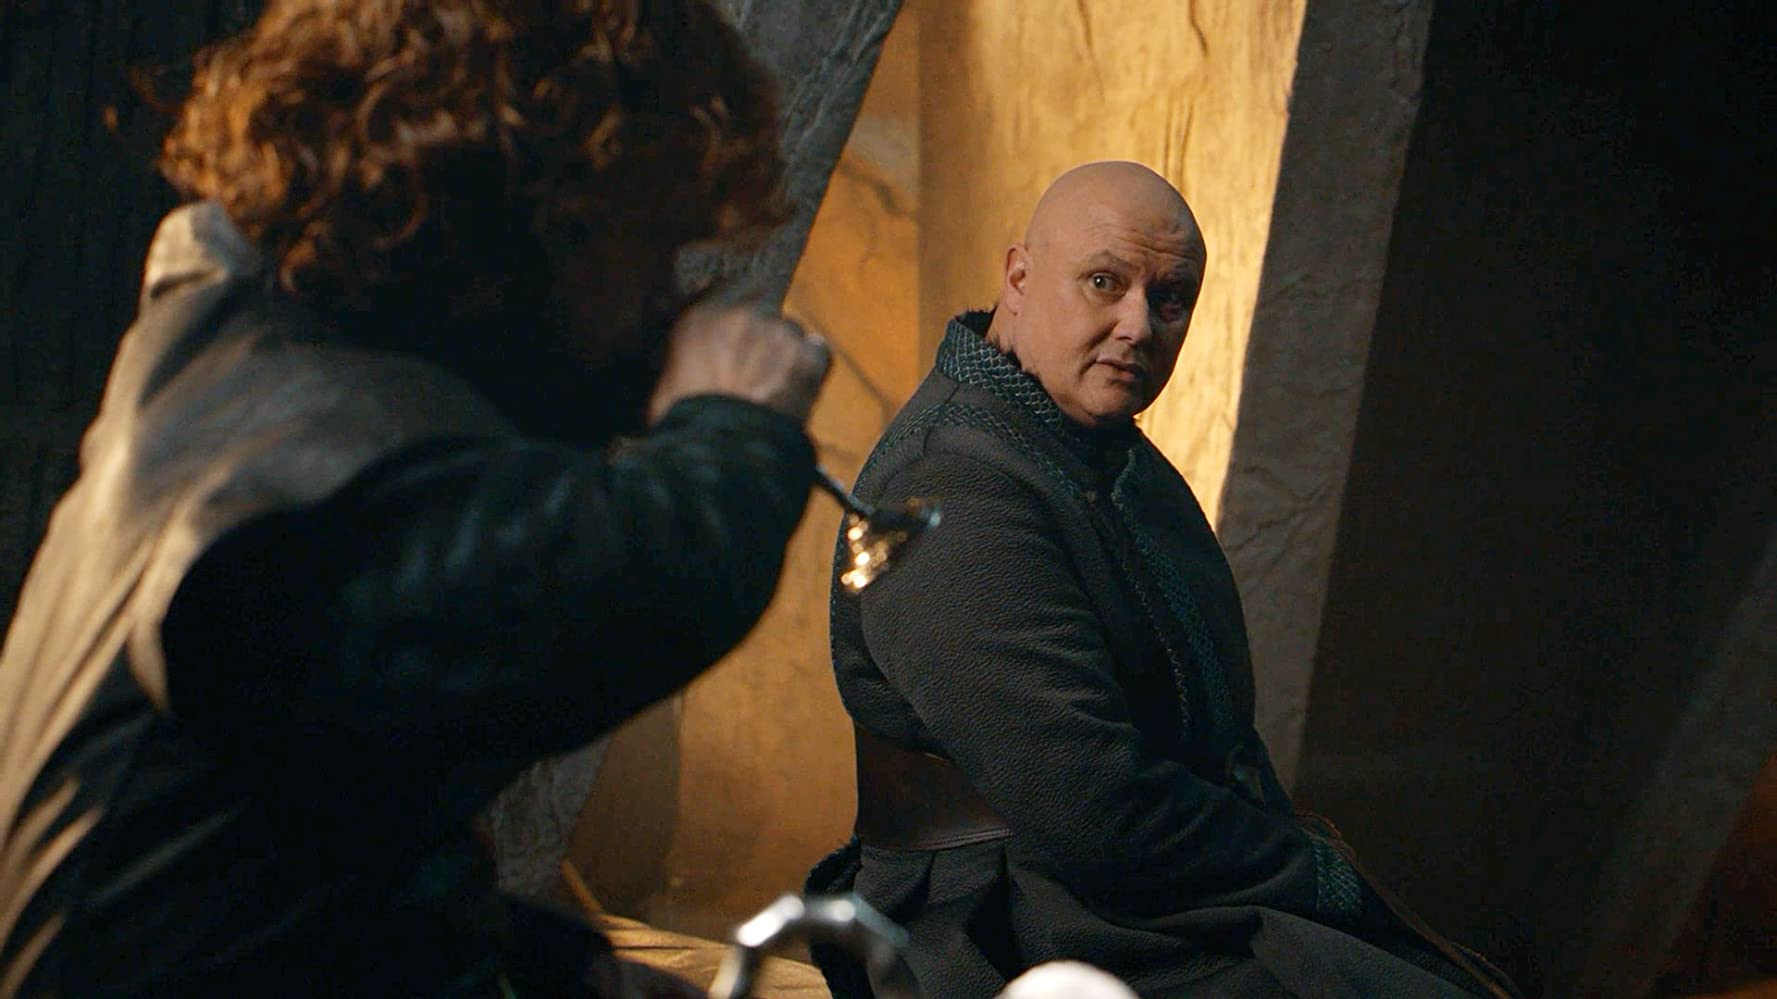 Peter Dinklage and Conleth Hill in Game of Thrones (2011)